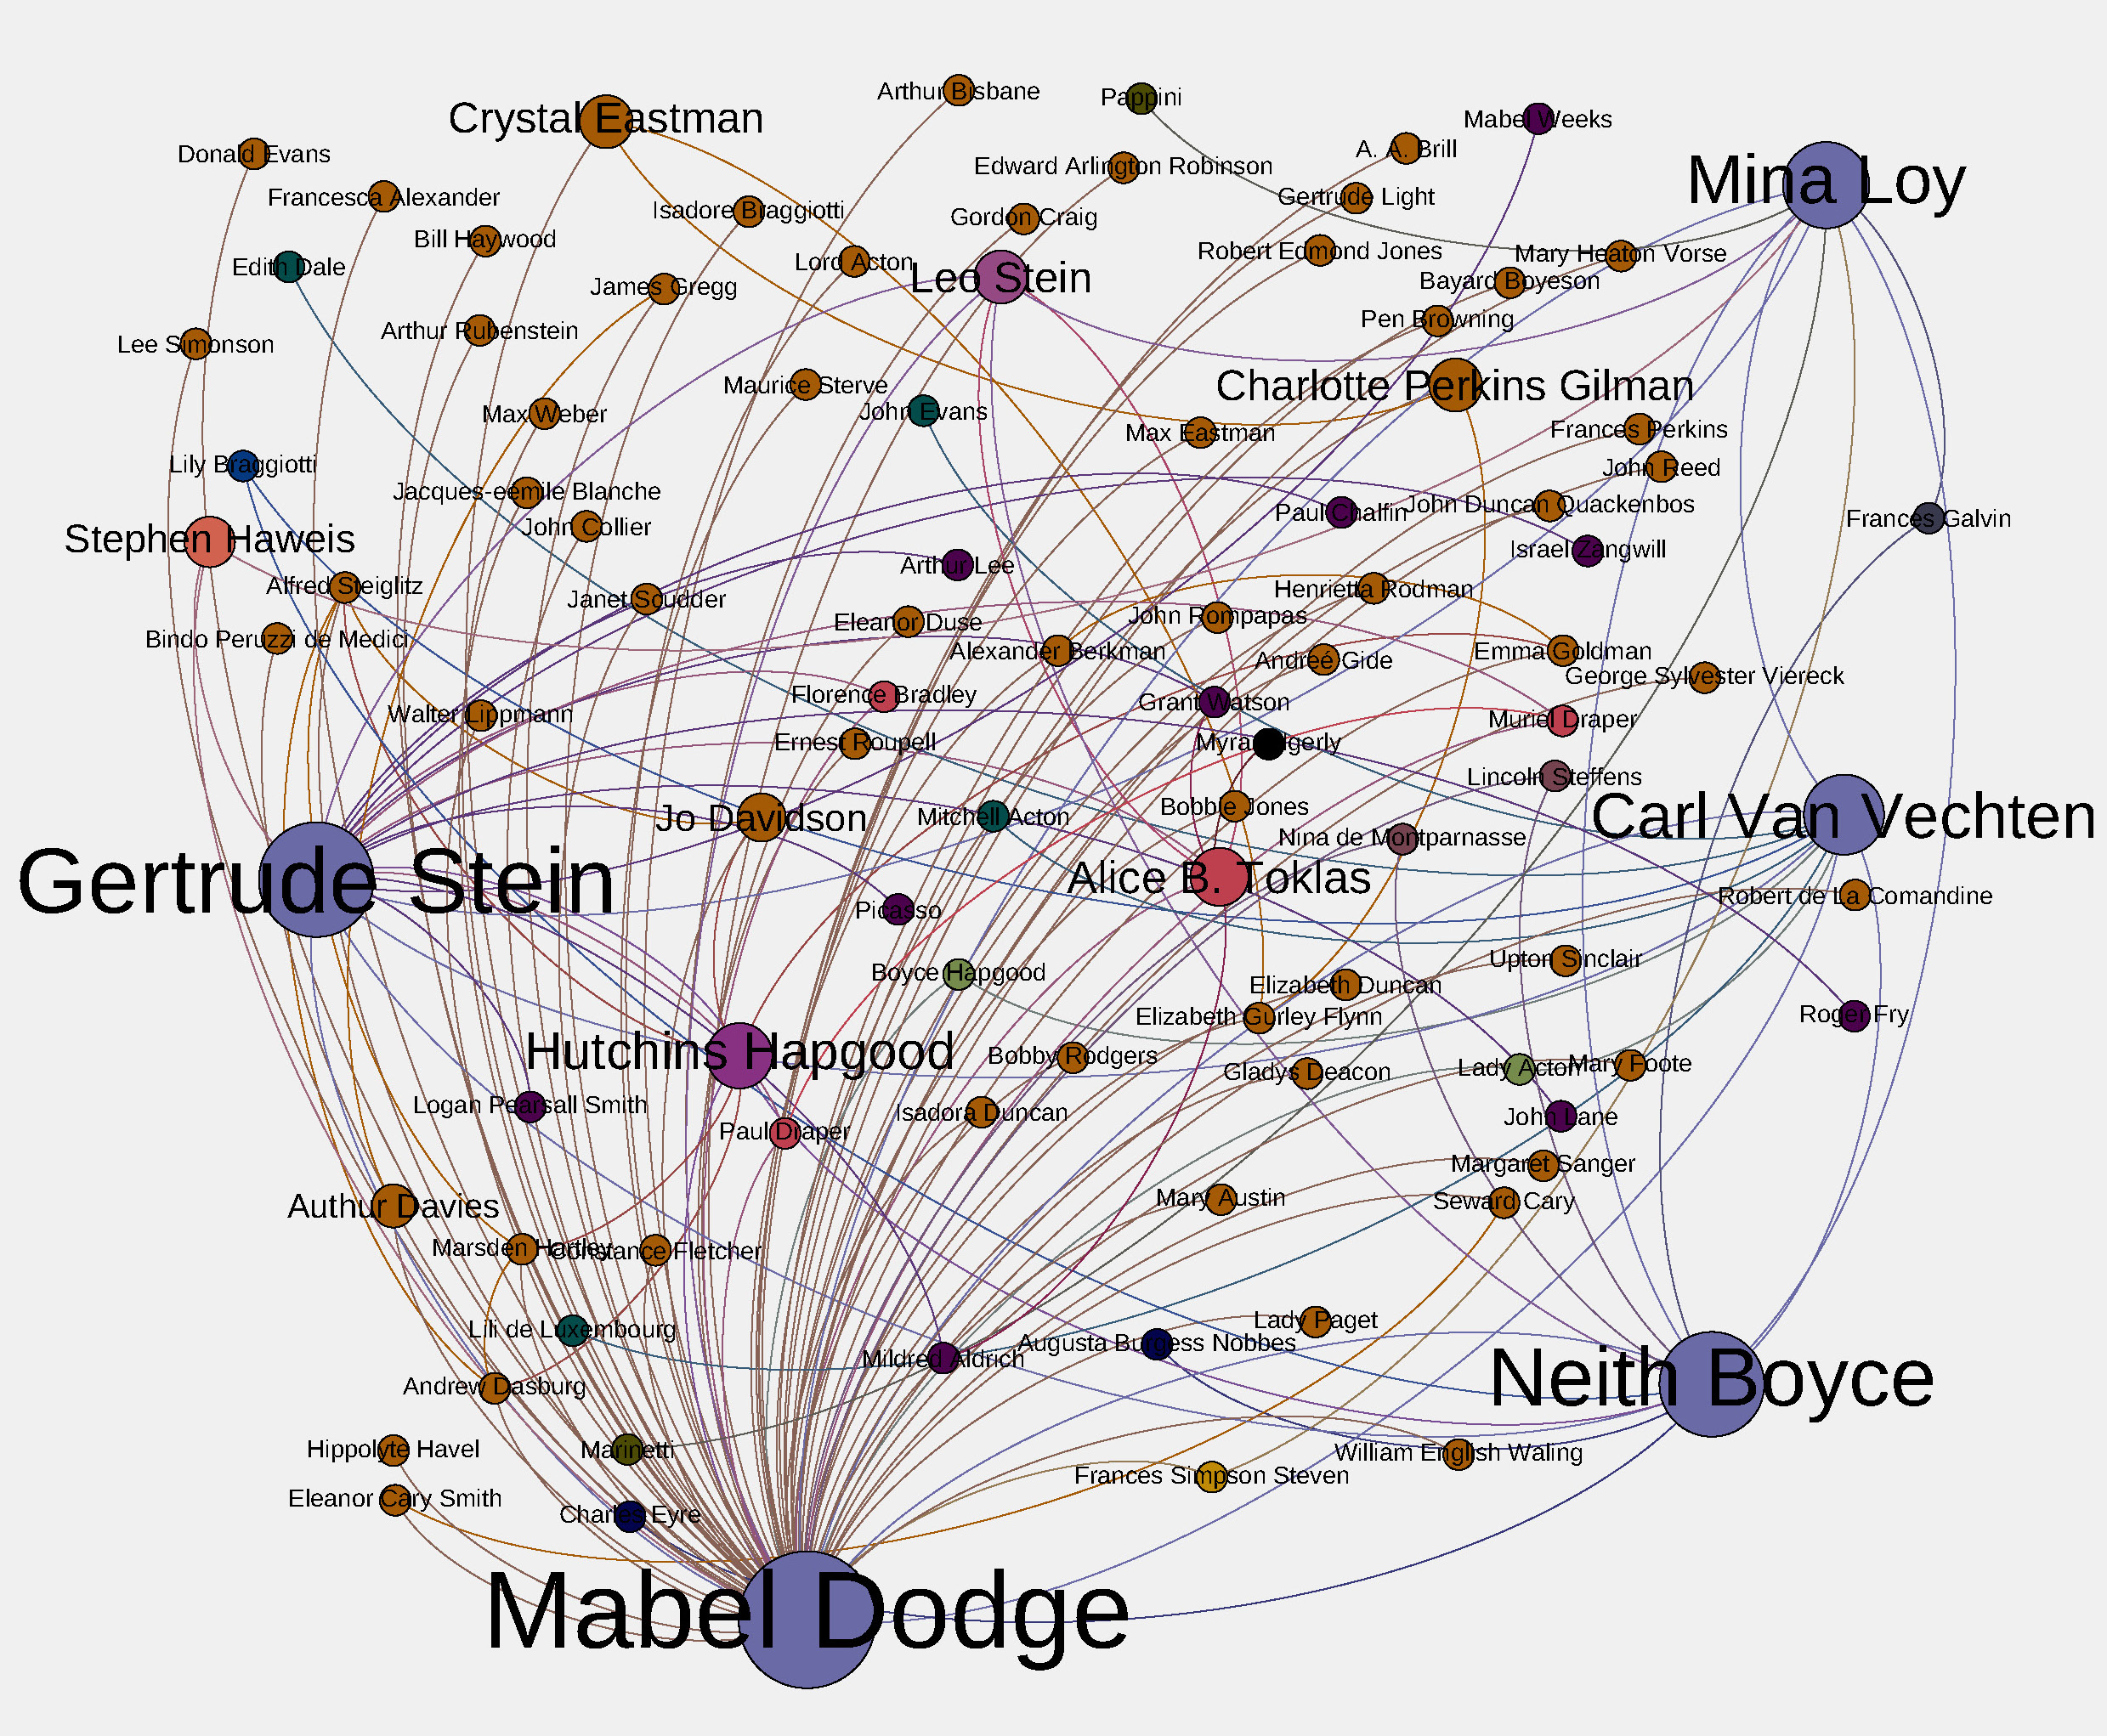 social network visualization mapping Mabel Dodge and her connections in the avant-garde